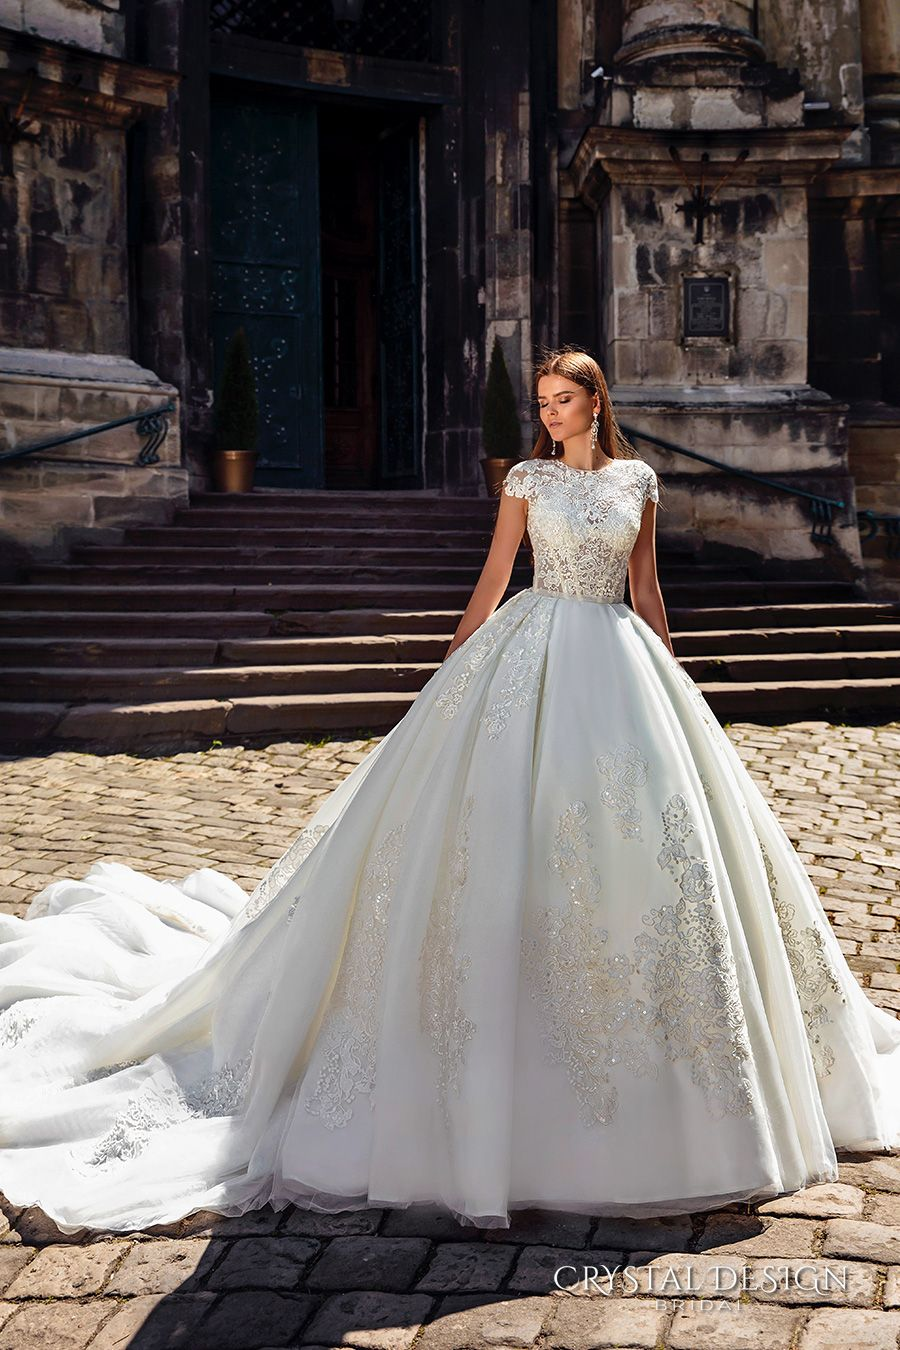 CRYSTAL DESIGN Bridal 2016 Cap Sleeves Jewel Neckline Heavily Embellished Bodice Princess Ball Gown Wedding Dress